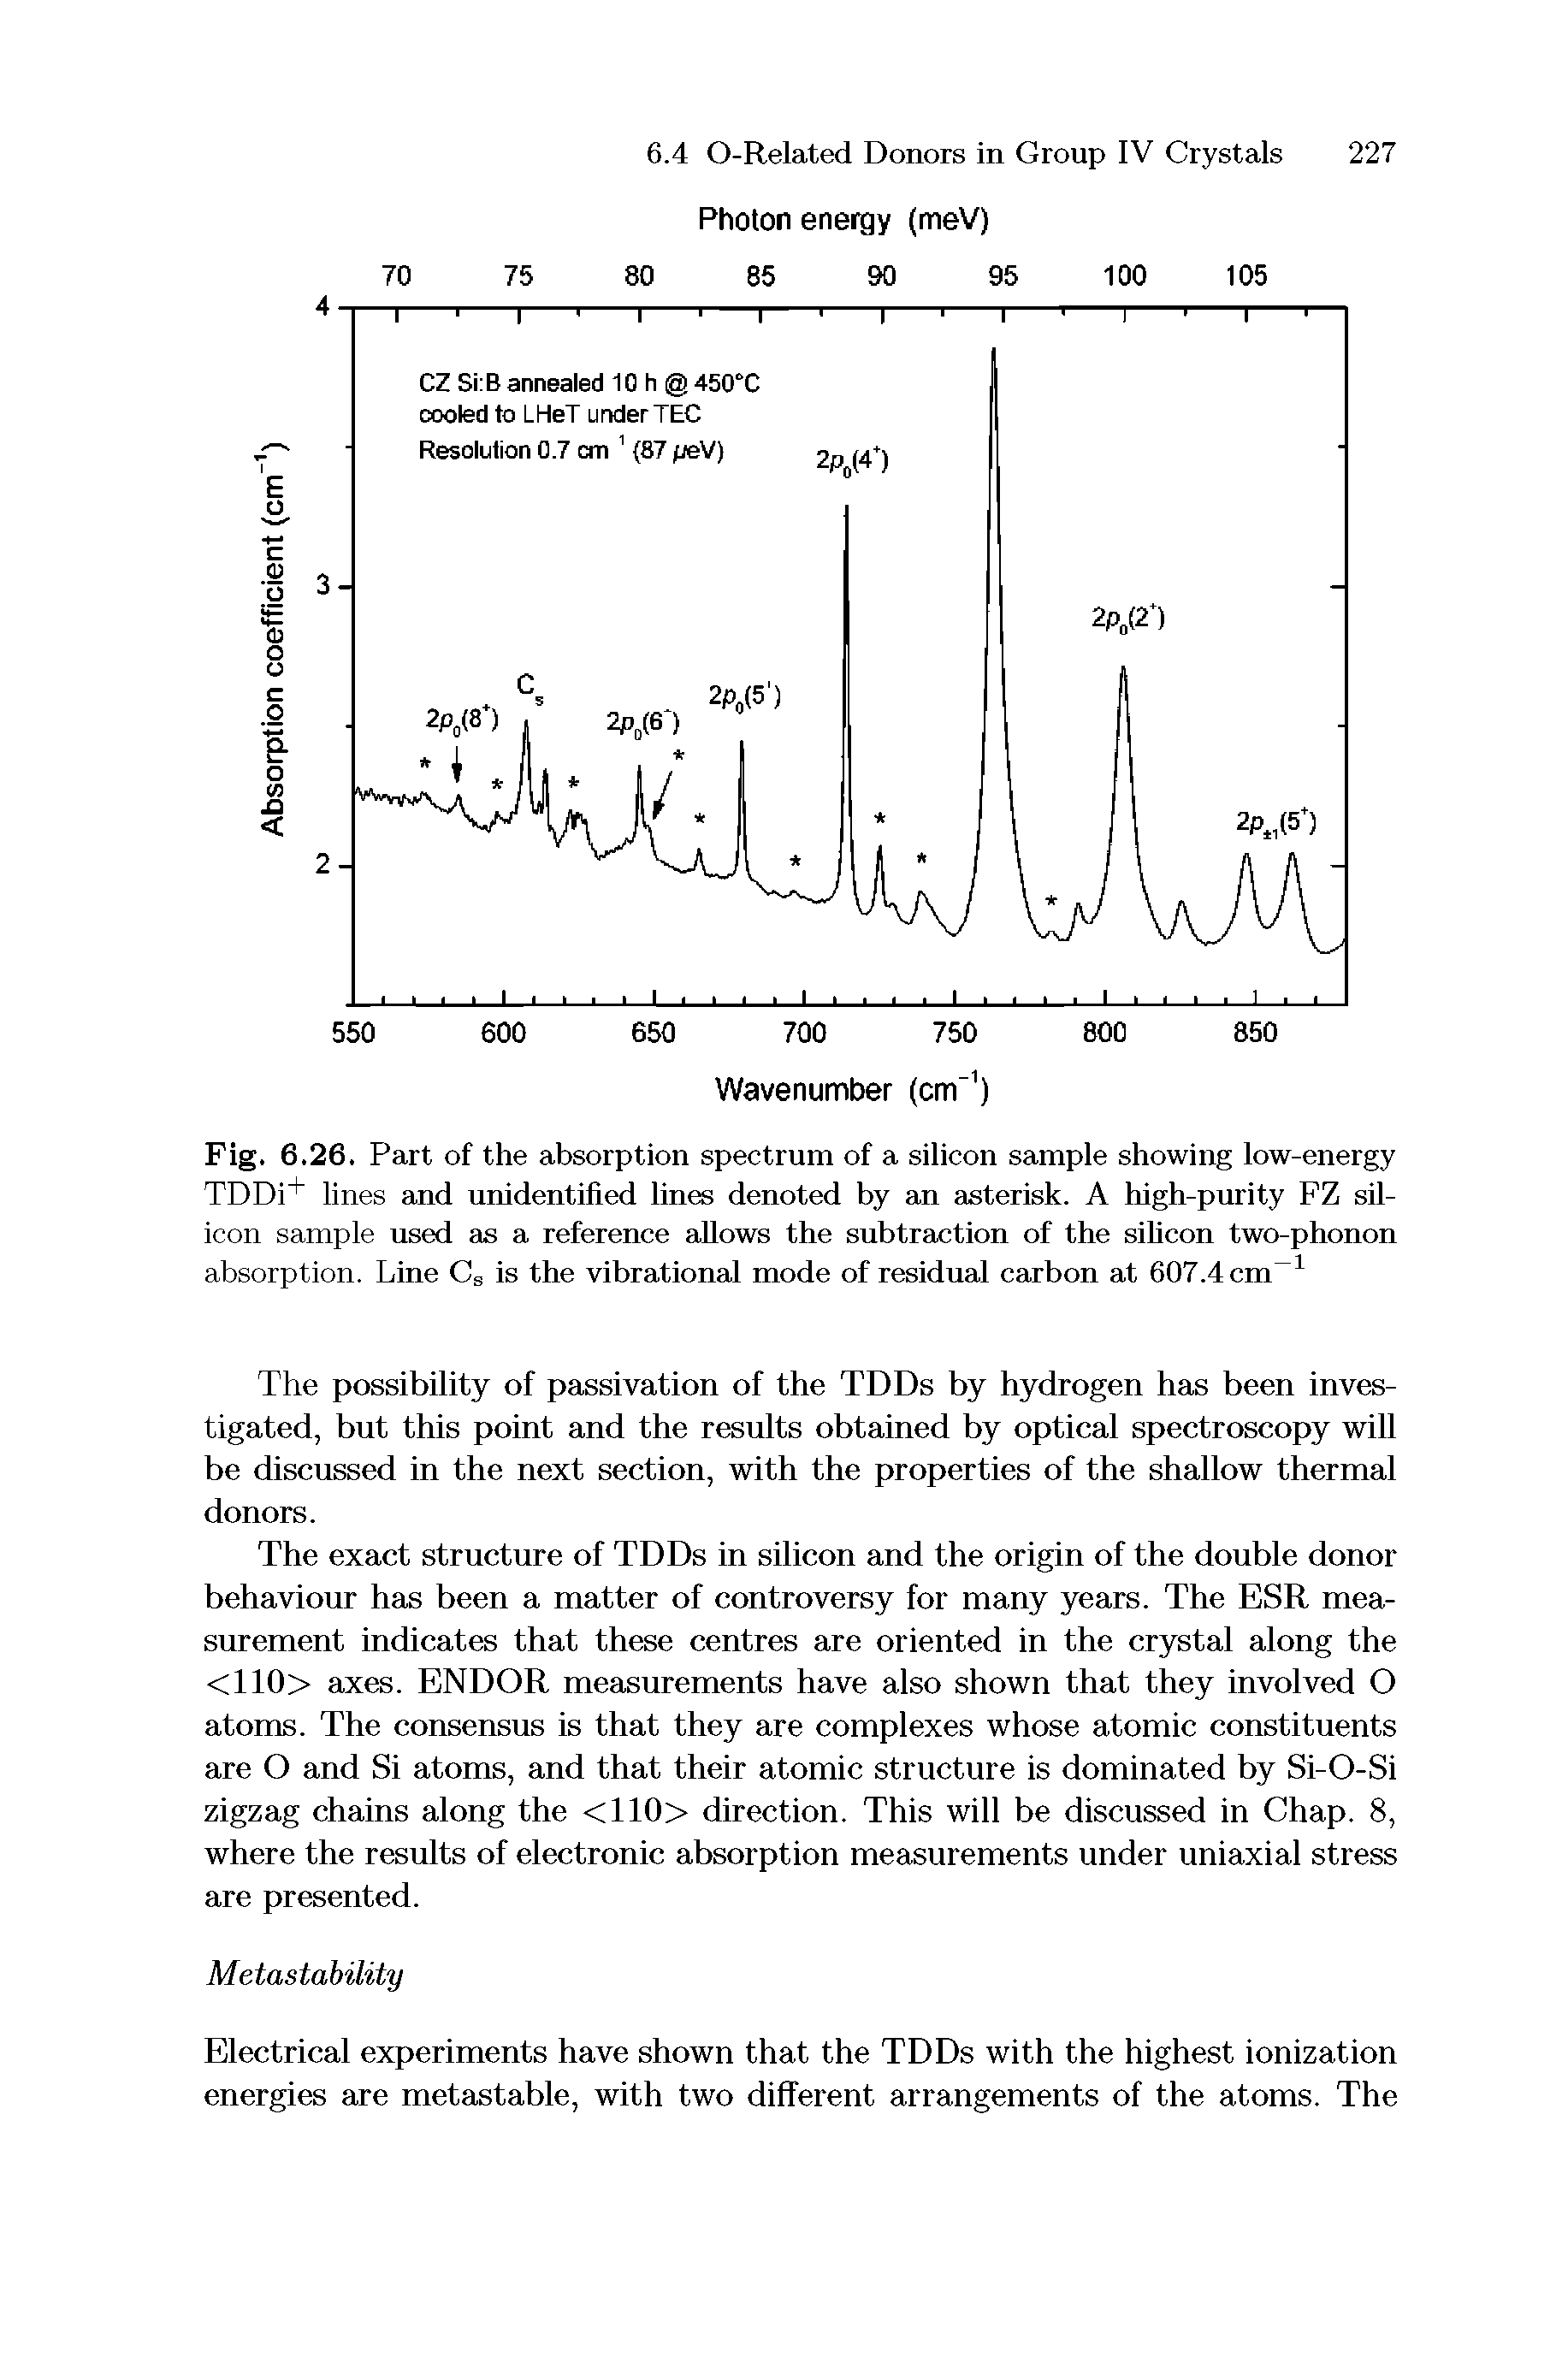 Fig. 6.26. Part of the absorption spectrum of a silicon sample showing low-energy TDDi+ lines and unidentified lines denoted by an asterisk. A high-purity FZ silicon sample used as a reference allows the subtraction of the silicon two-phonon absorption. Line Cs is the vibrational mode of residual carbon at 607.4 cm 1...